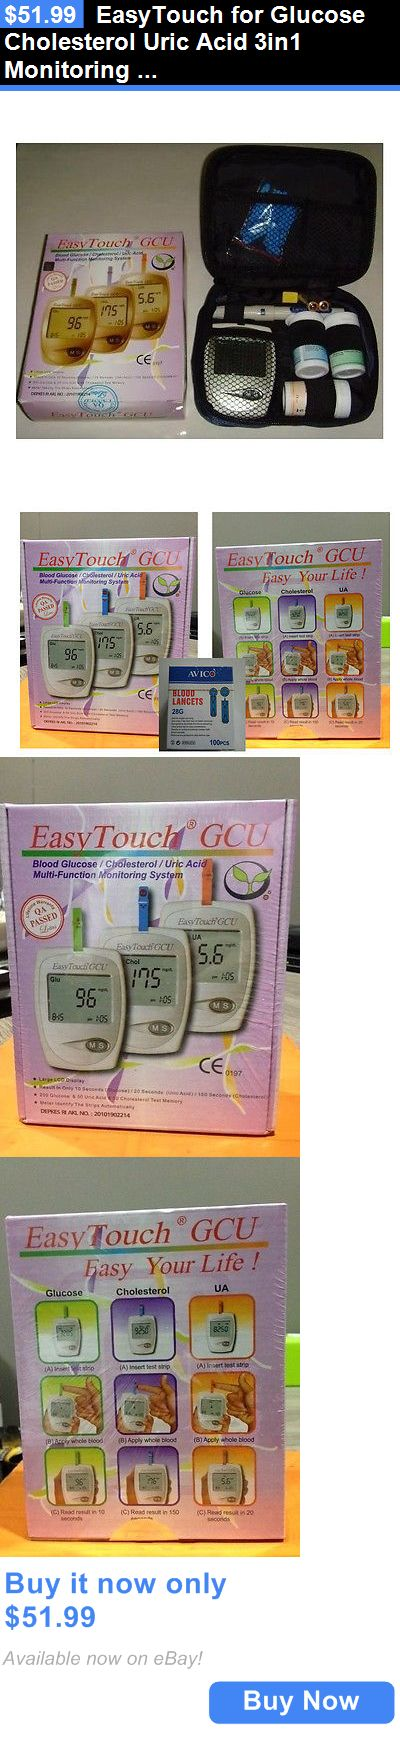 Cholesterol Testing: Easytouch For Glucose Cholesterol Uric Acid 3In1 Monitoring System +Free Lancets BUY IT NOW ONLY: $51.99